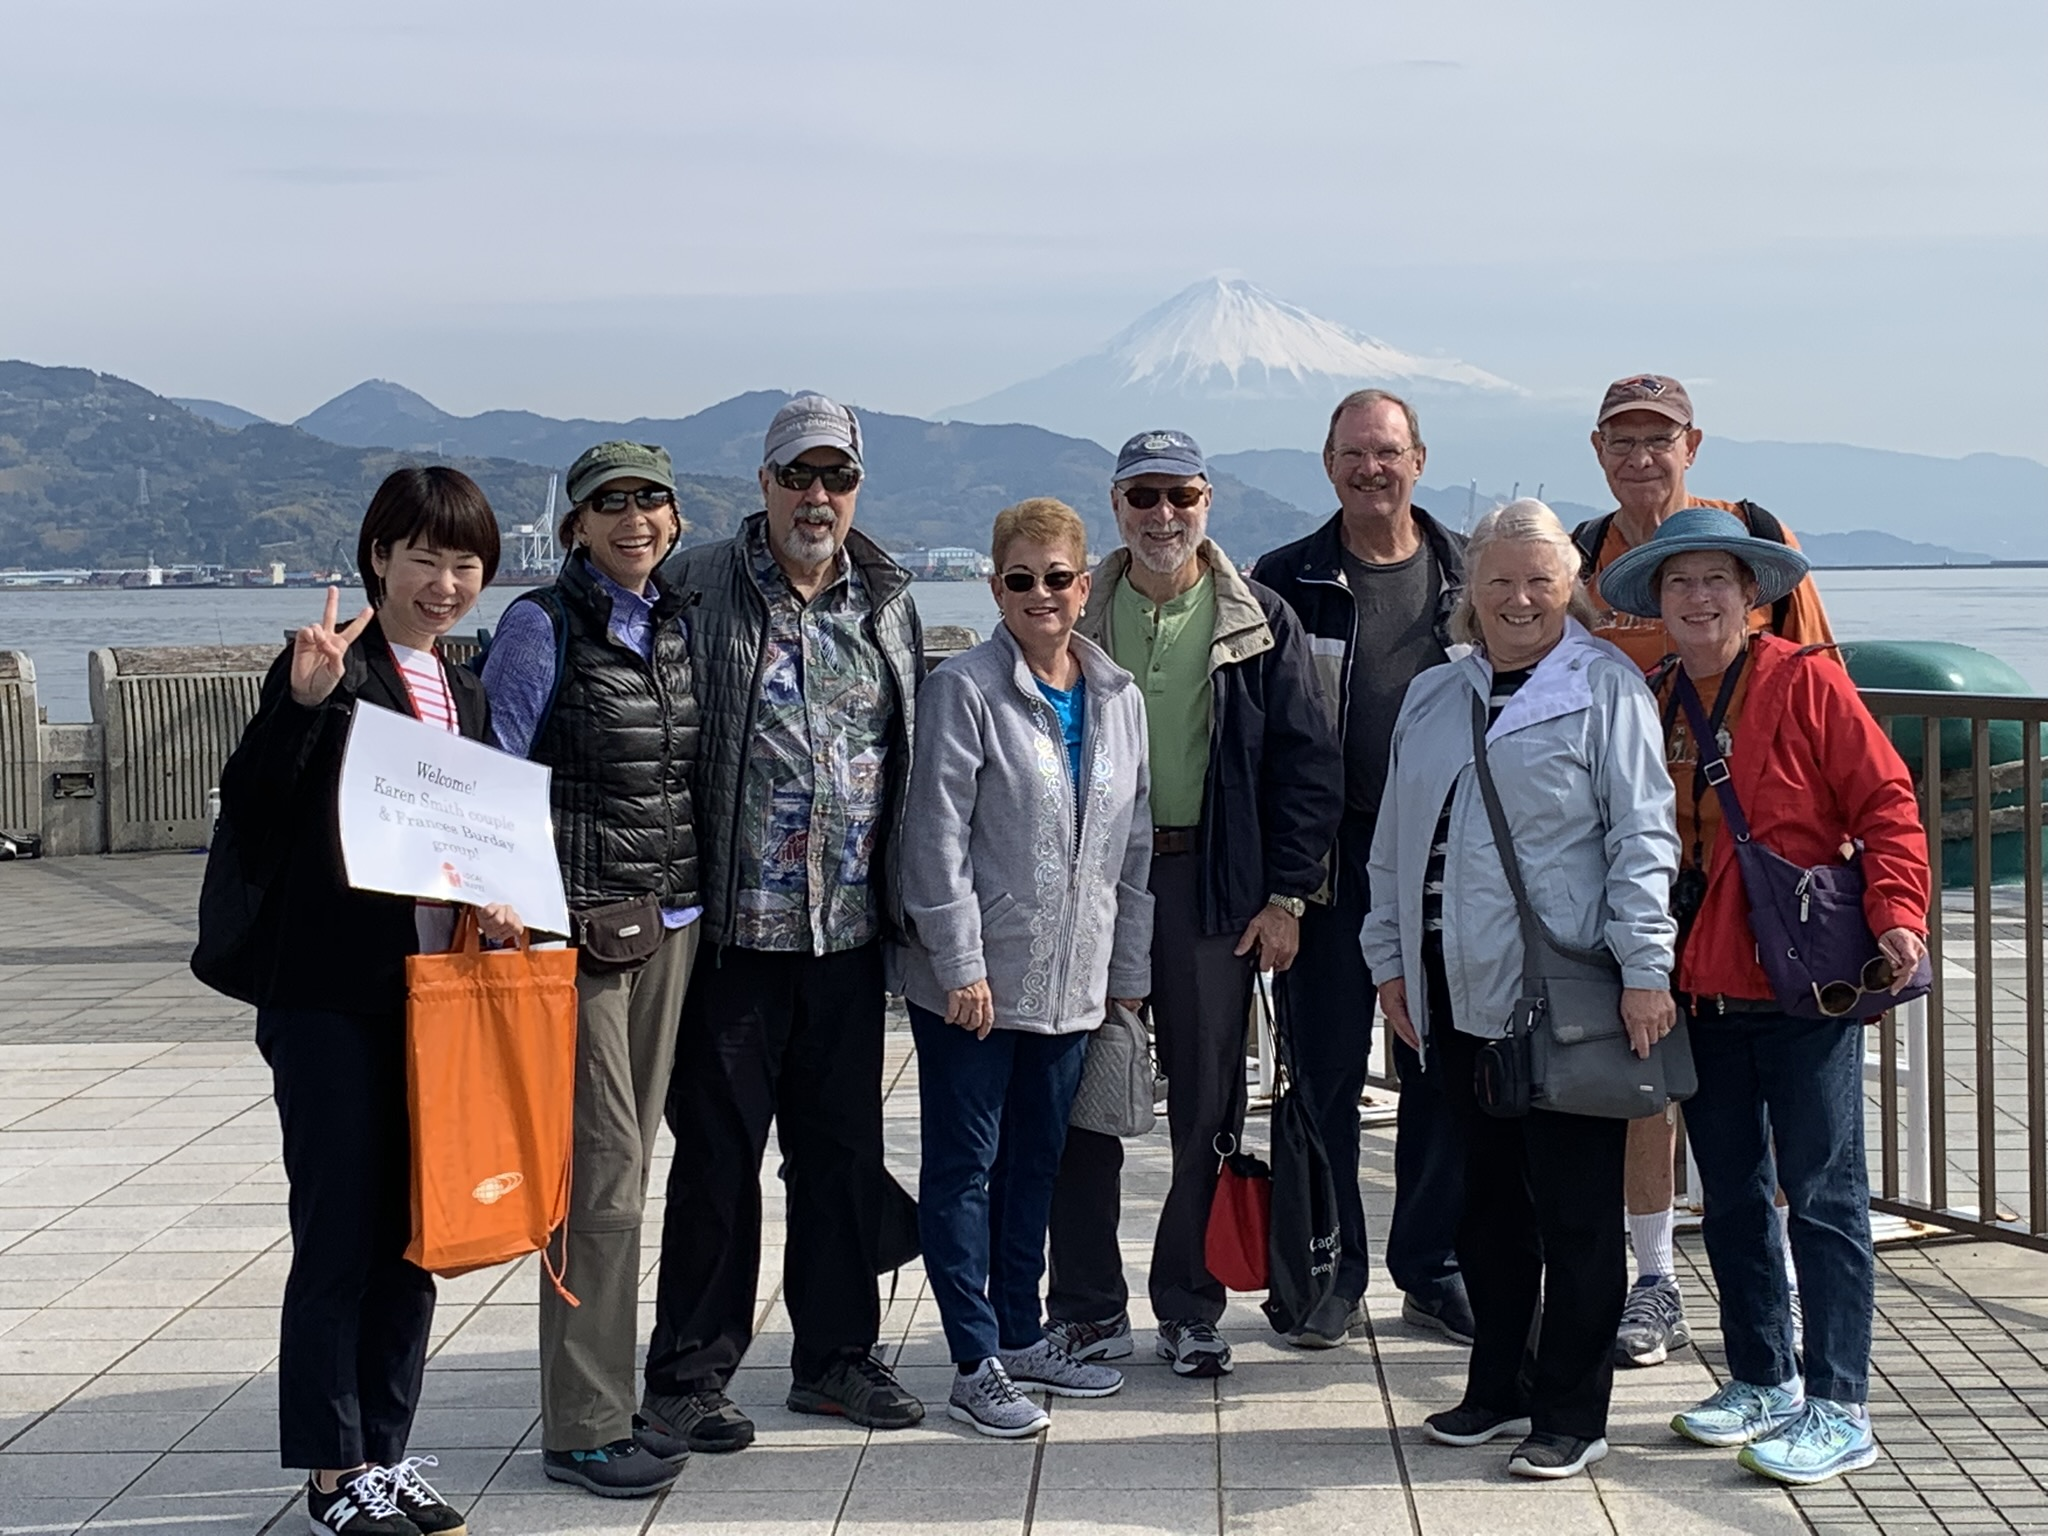 Kiyono, a partner English speaking guide of Local Travel partners